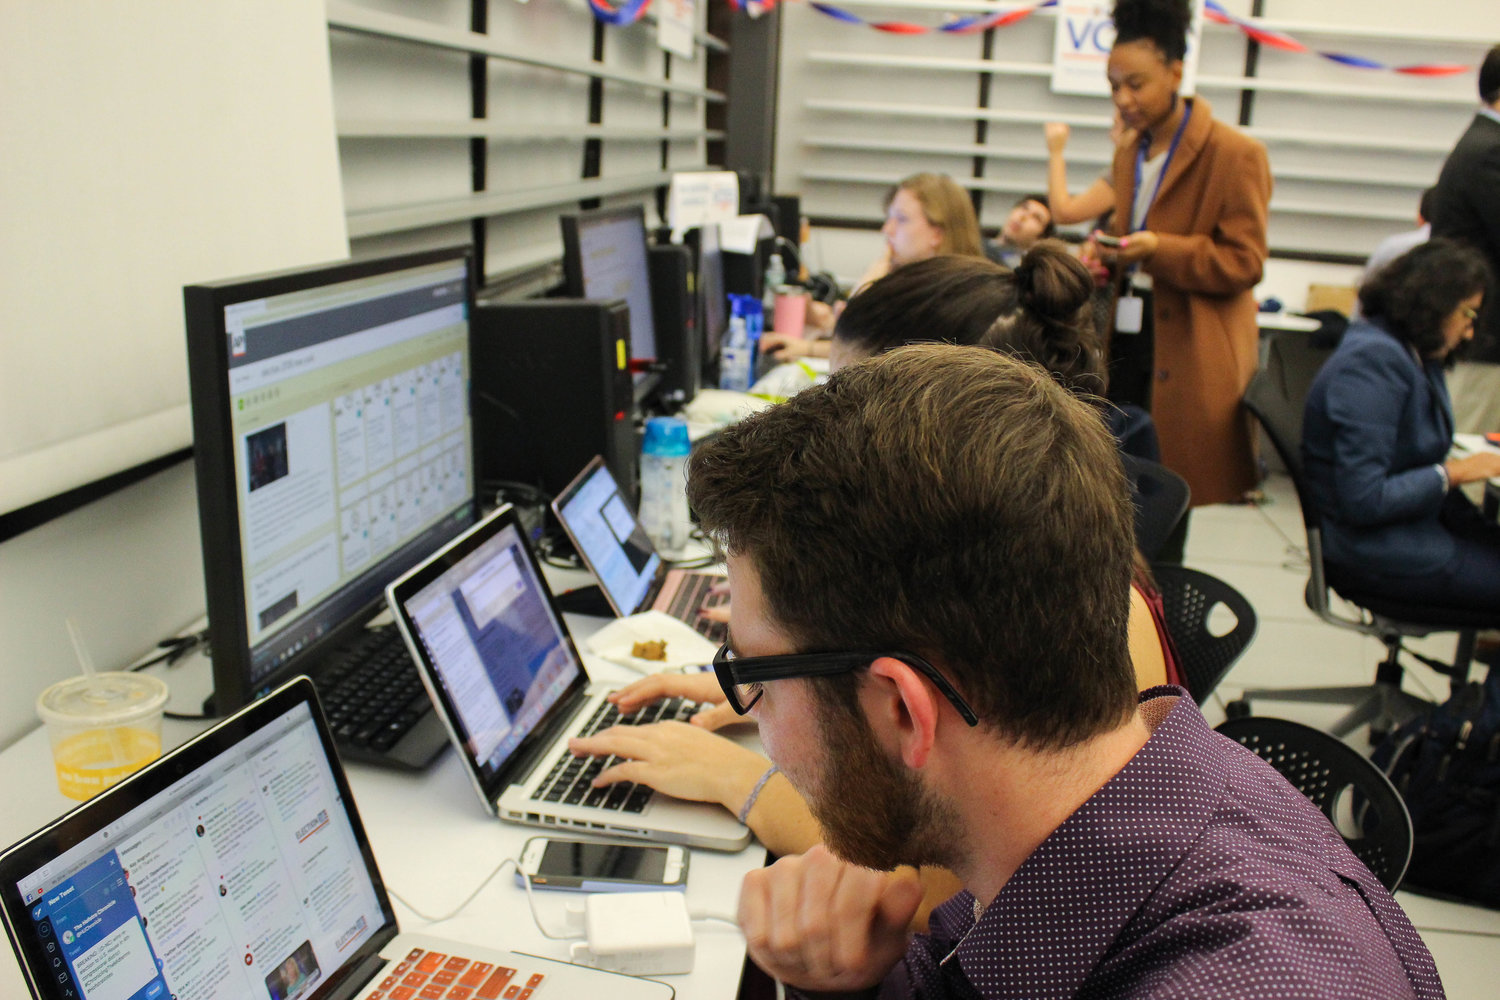 The staff of The Hofstra Chronicle updated social media with election results and began searching for angles for the next day's paper.